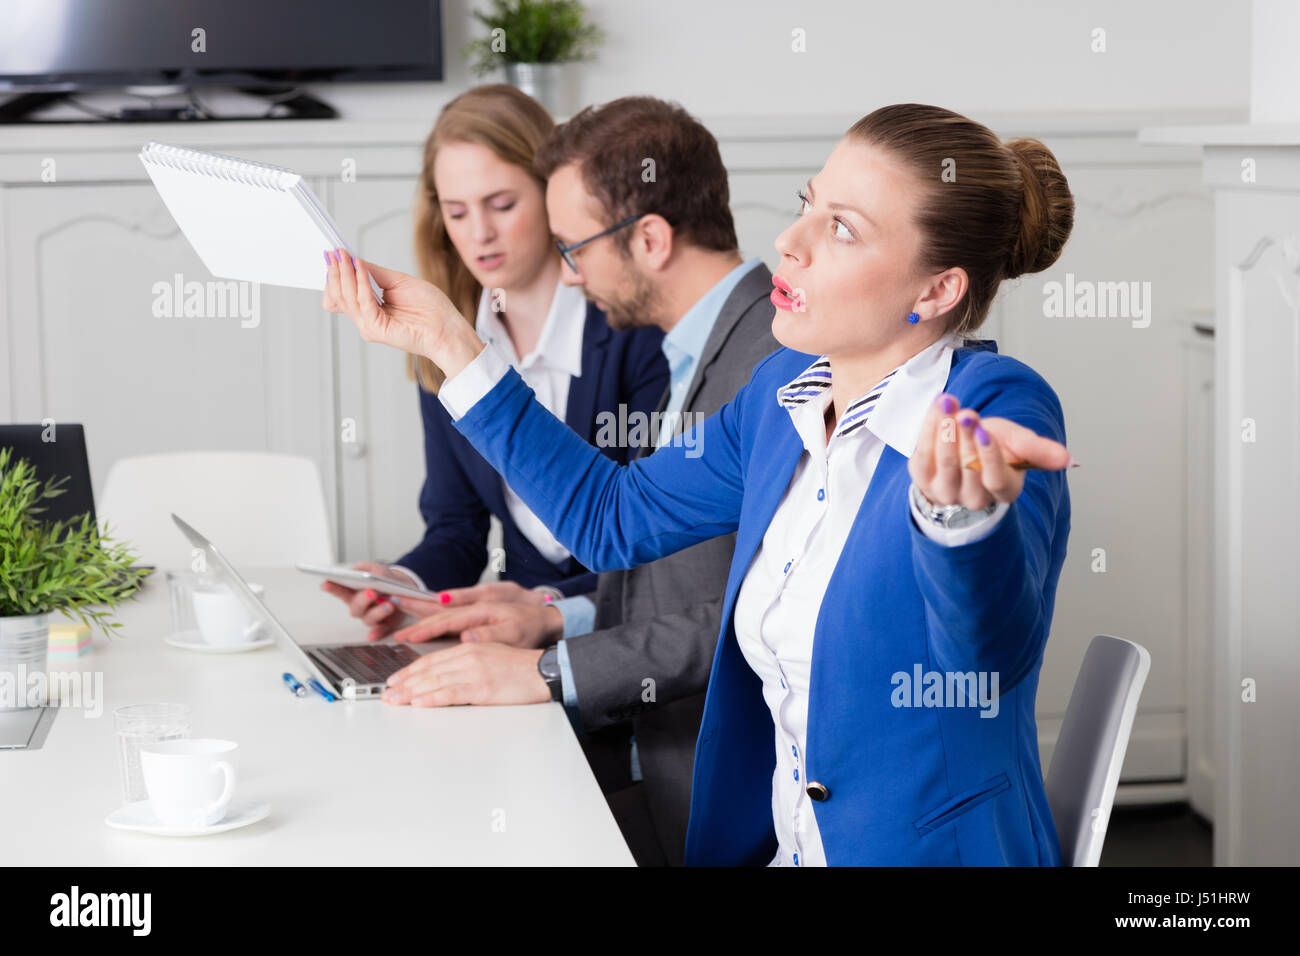 Businesswoman expressing disagreement on a business meeting - Stock Image